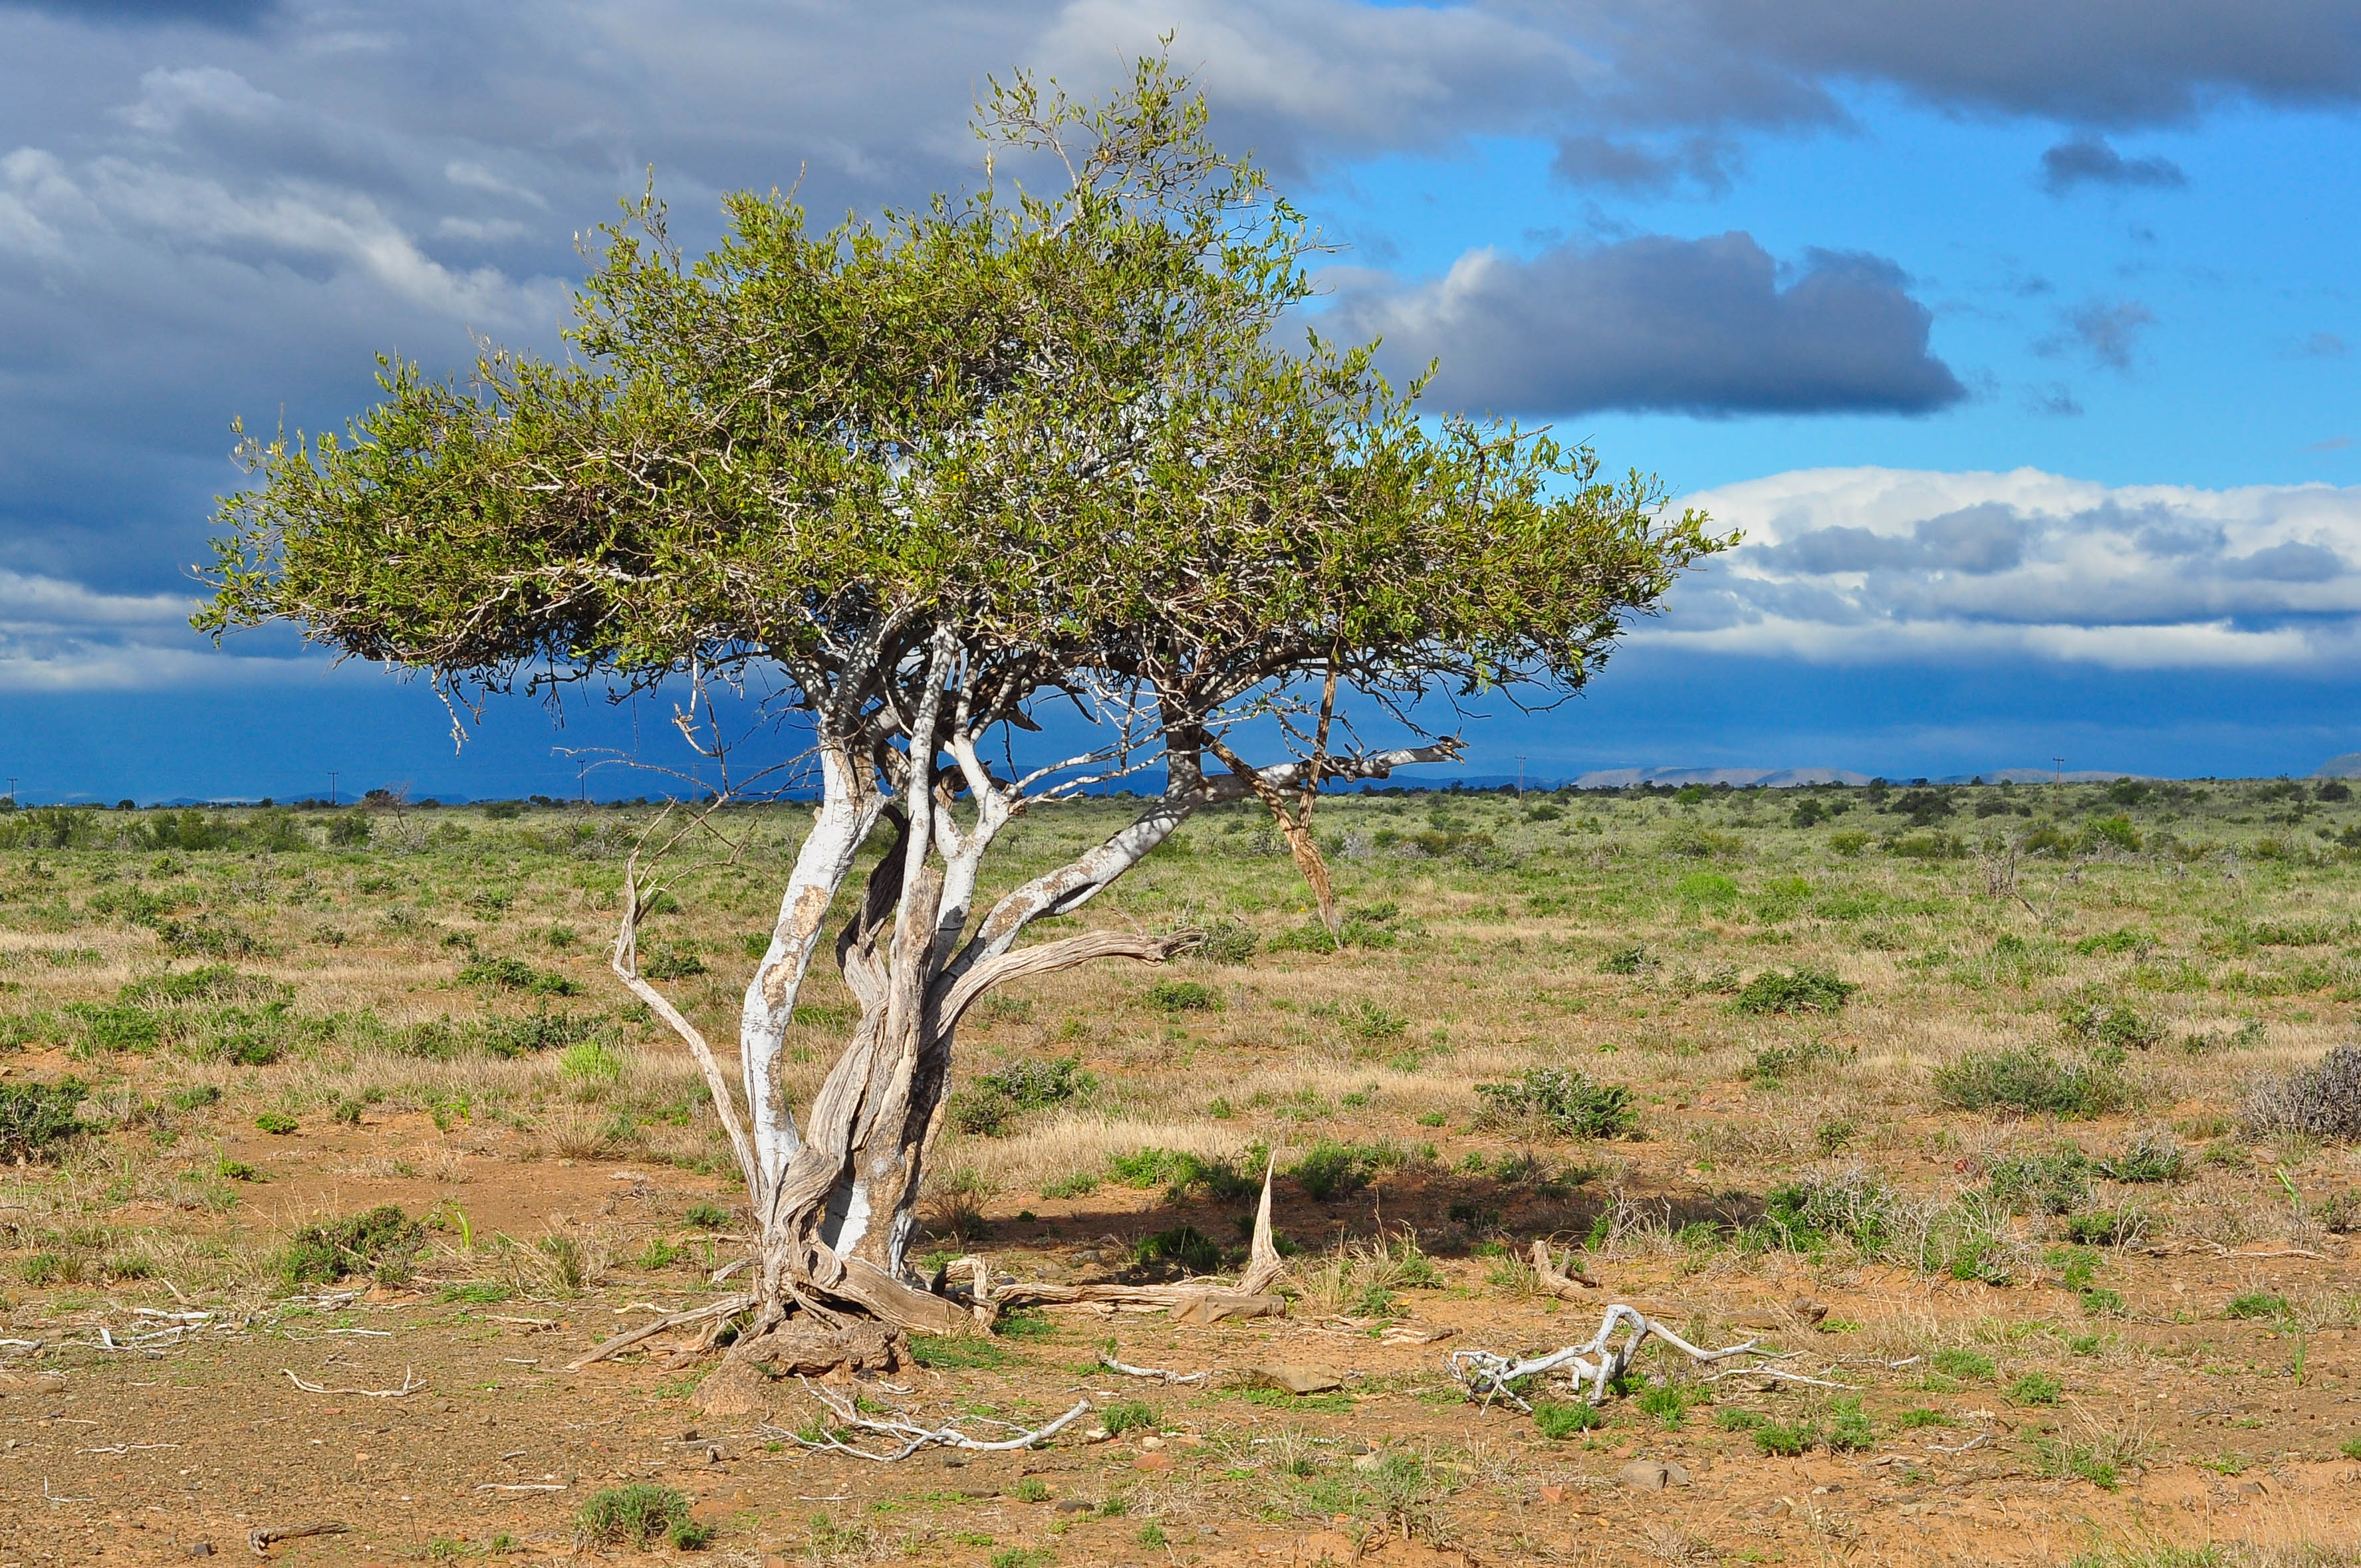 Shepherd's tree (Boscia albitrunca), native to the Kalahari Desert, has the deepest documented roots: more than 70 meters, or 230 feet, deep. Their depth was discovered accidentally by drillers of groundwater wells. Michael Potter11/Shutterstock